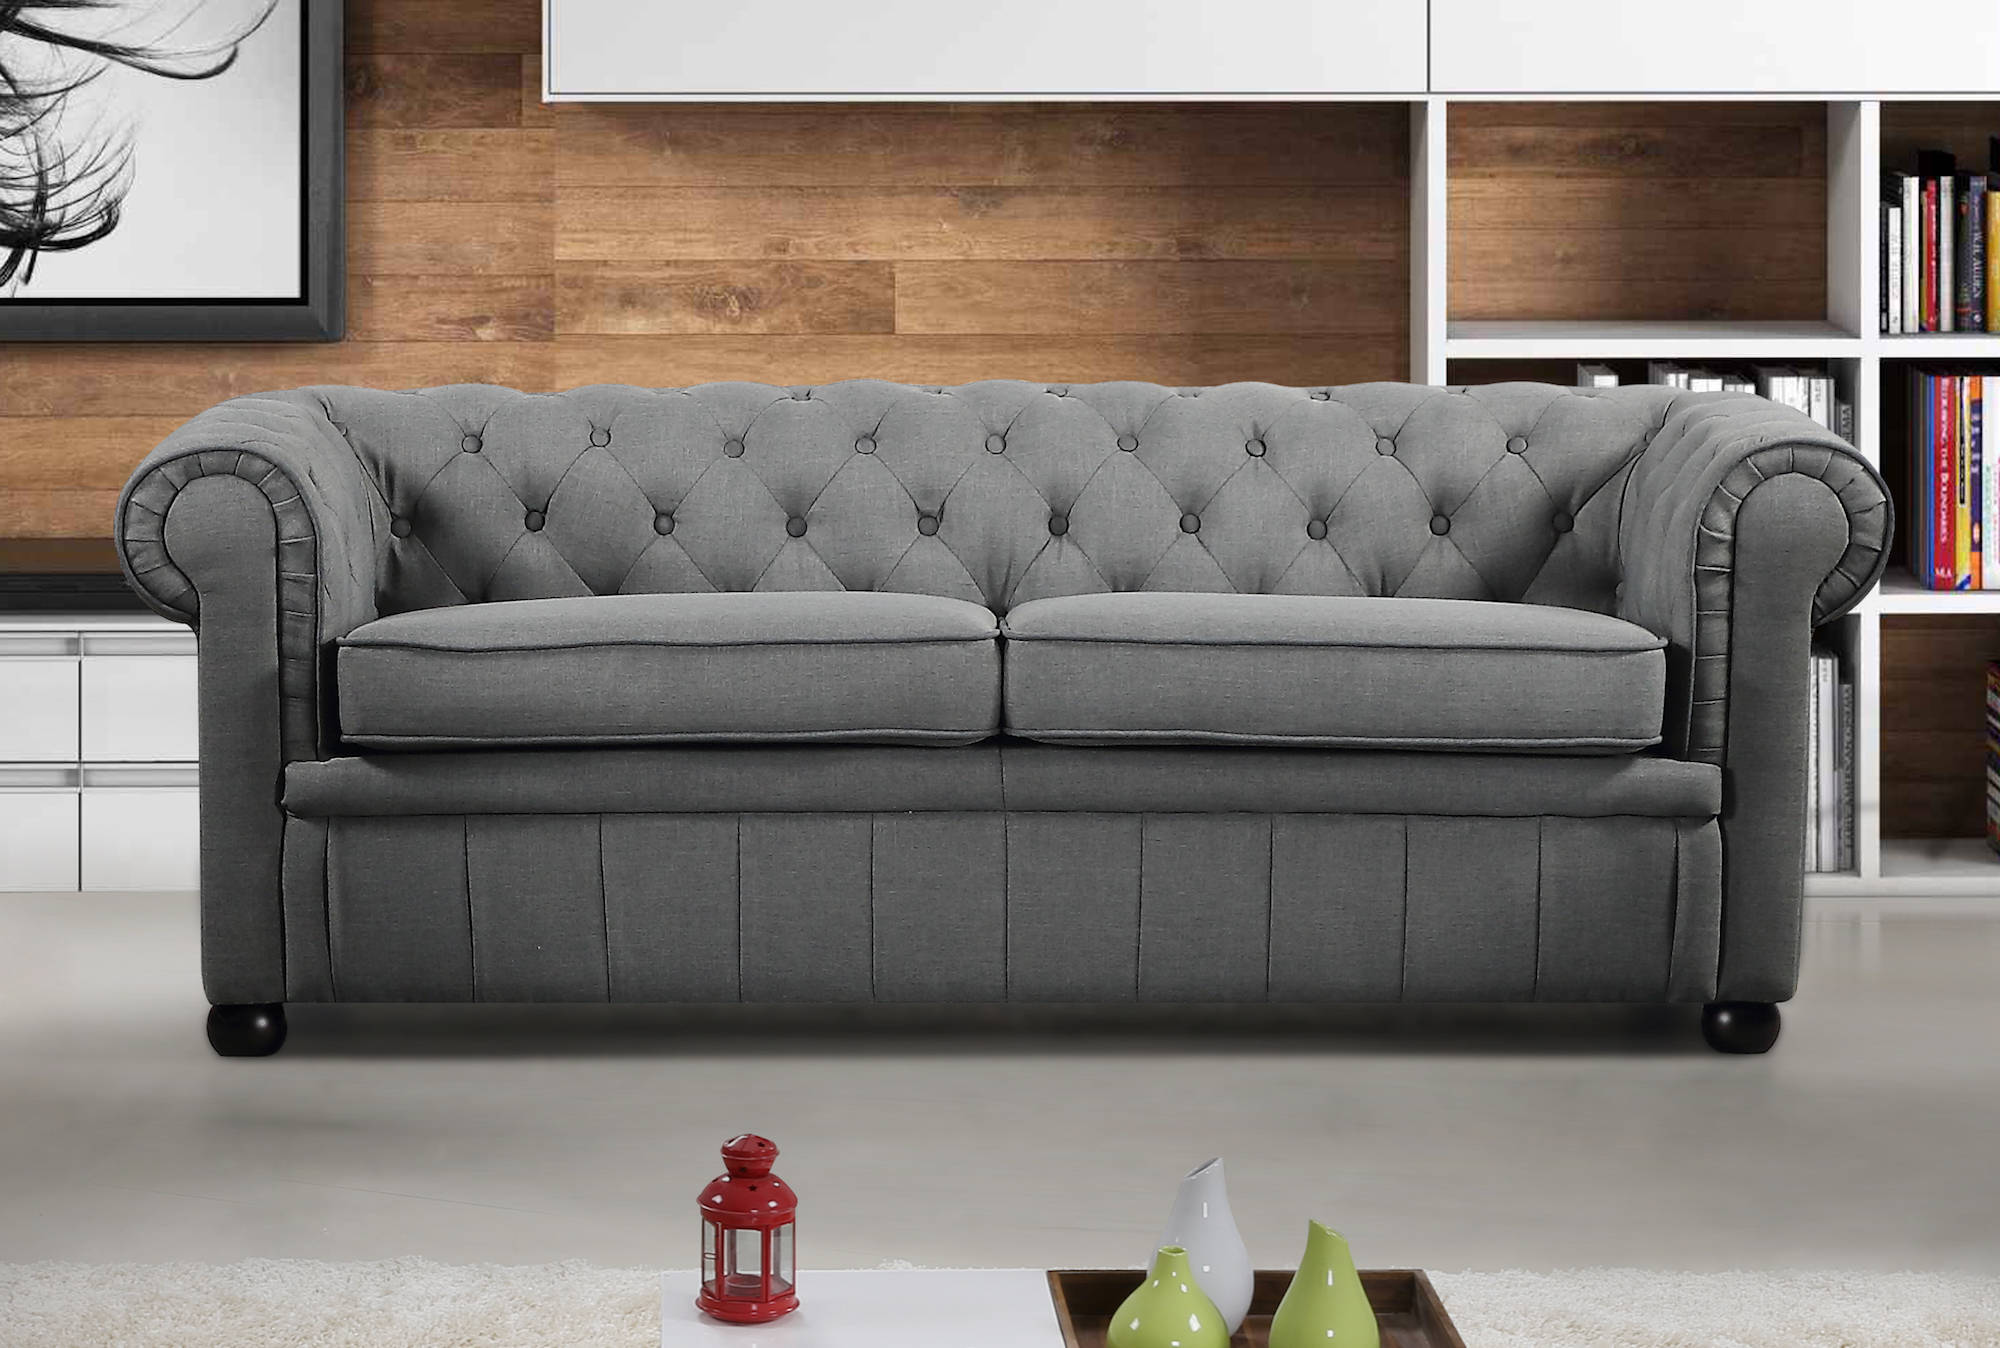 chesterfield style fabric sofa cleaning services in gurgaon modern dark grey